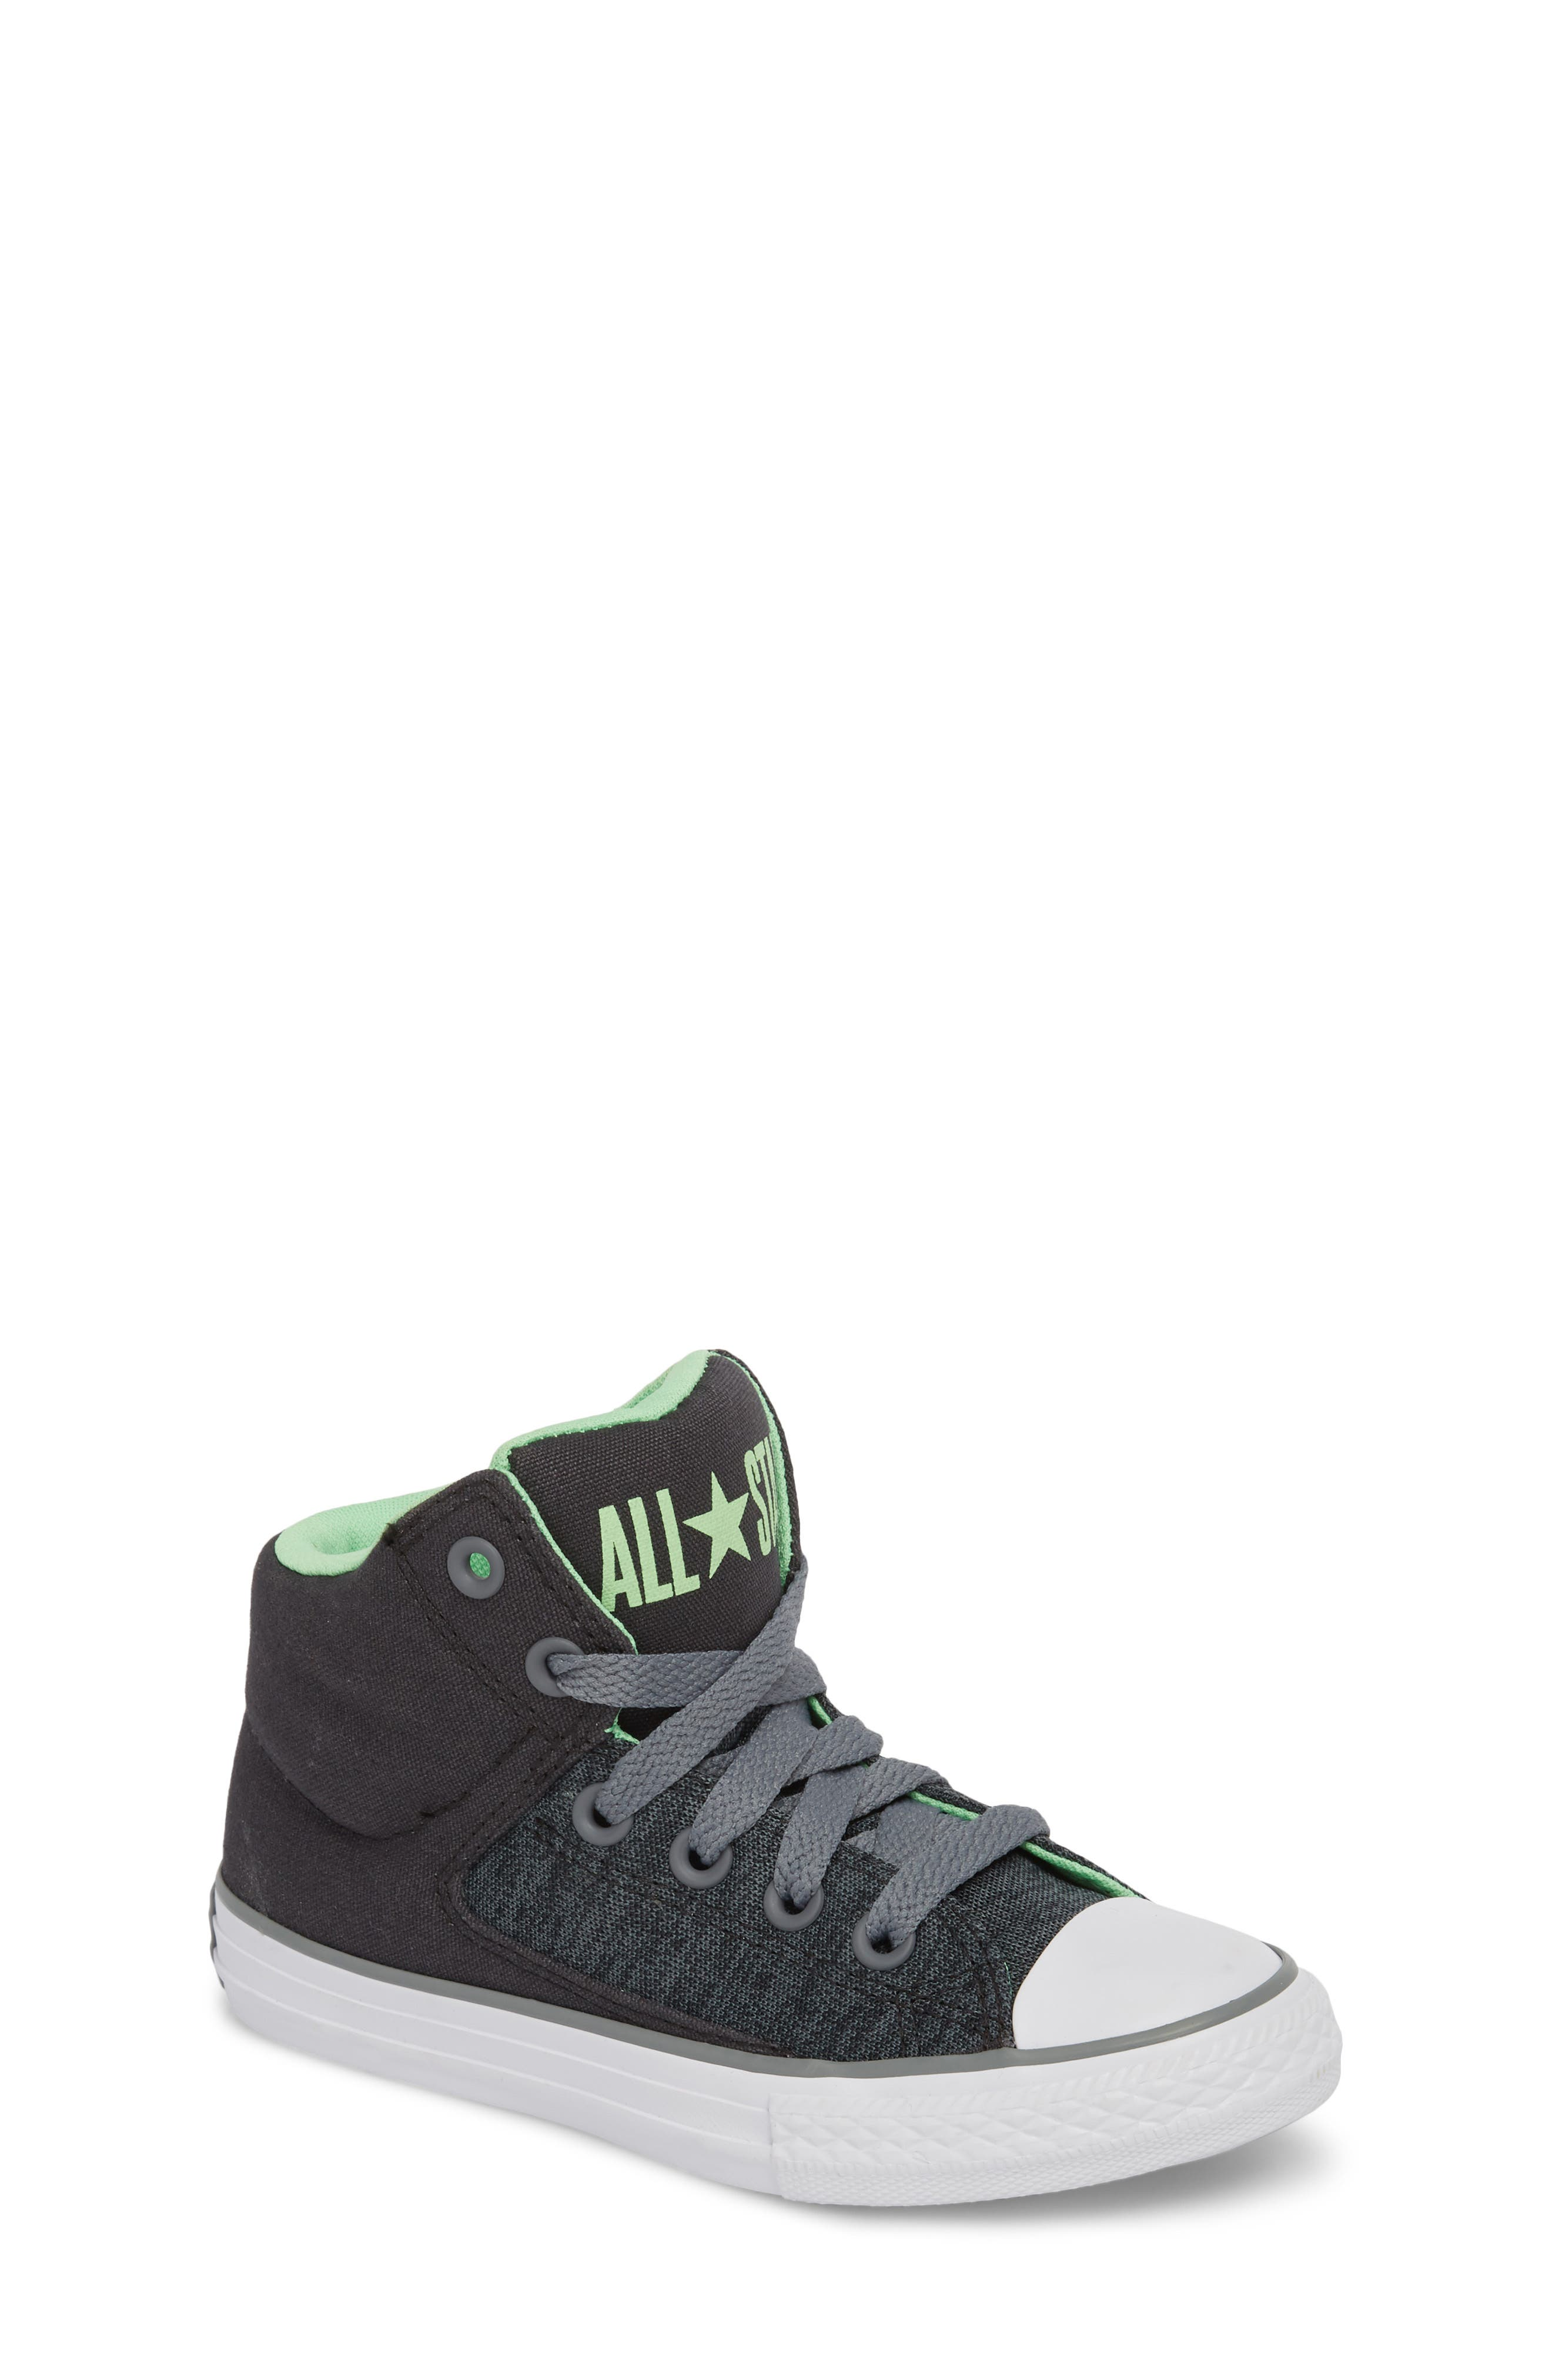 Chuck Taylor<sup>®</sup> All Star<sup>®</sup> High Street High Top Sneaker,                             Main thumbnail 1, color,                             Almost Black